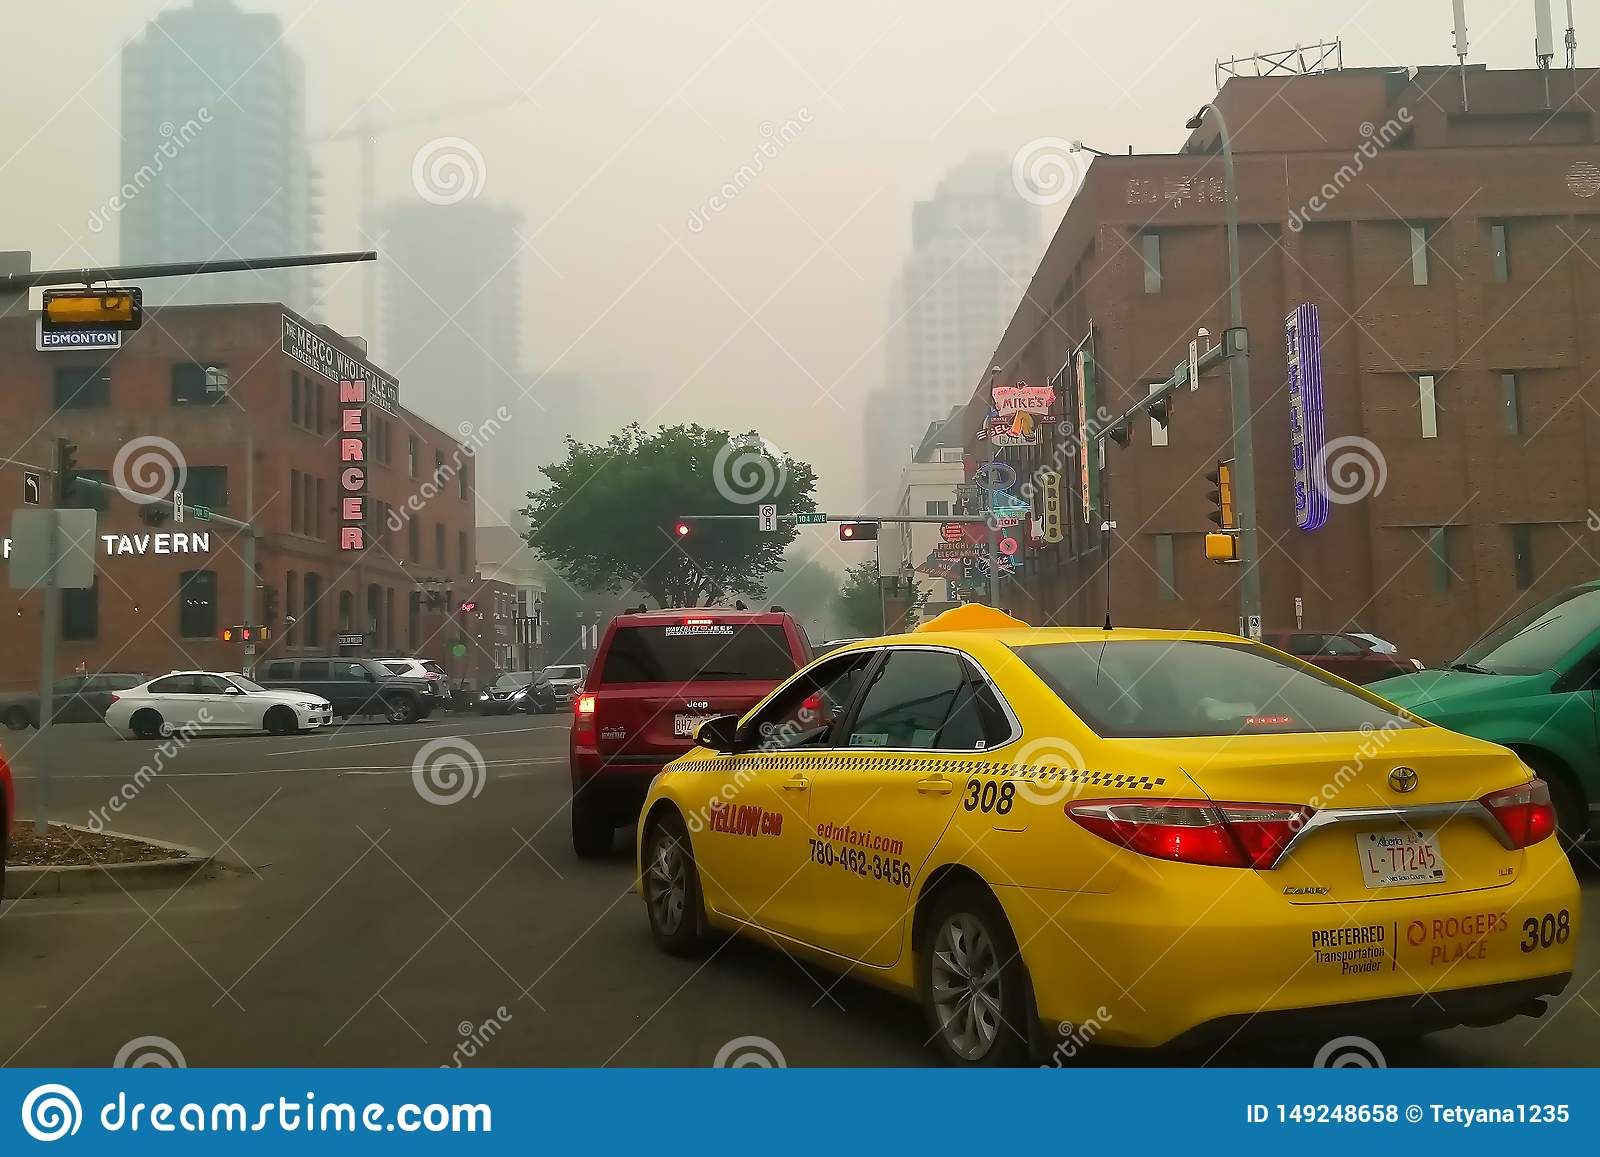 Edmonton, Alberta, Canada - May 30 2019: Air quality advisory in effect as wildfire smoke blankets city